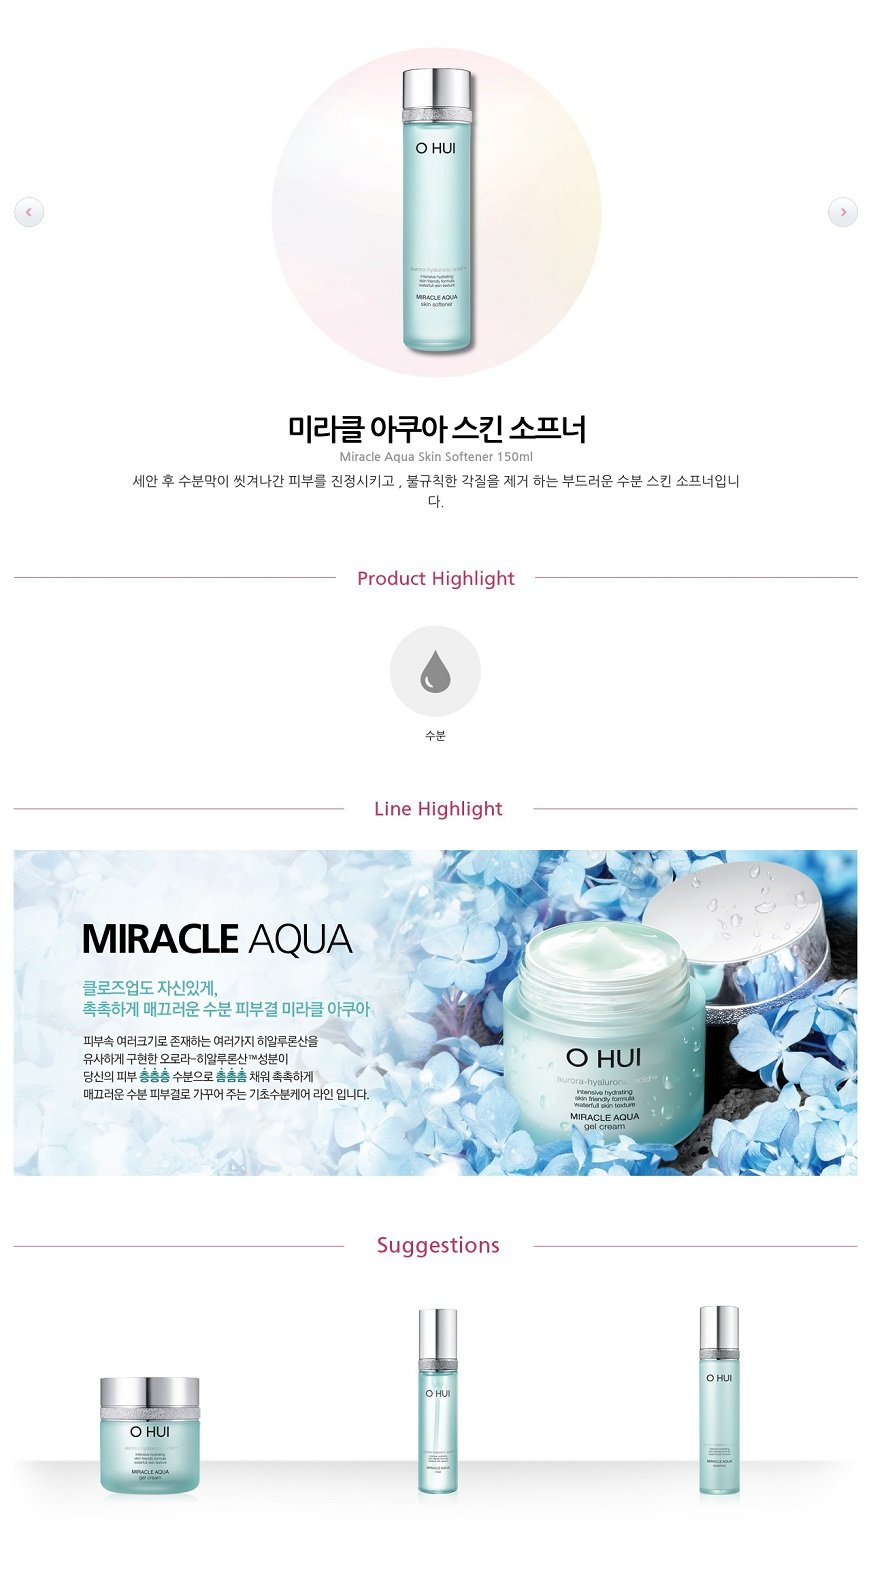 Miracle Aqua Skin Softner - Blooming Cosmetics